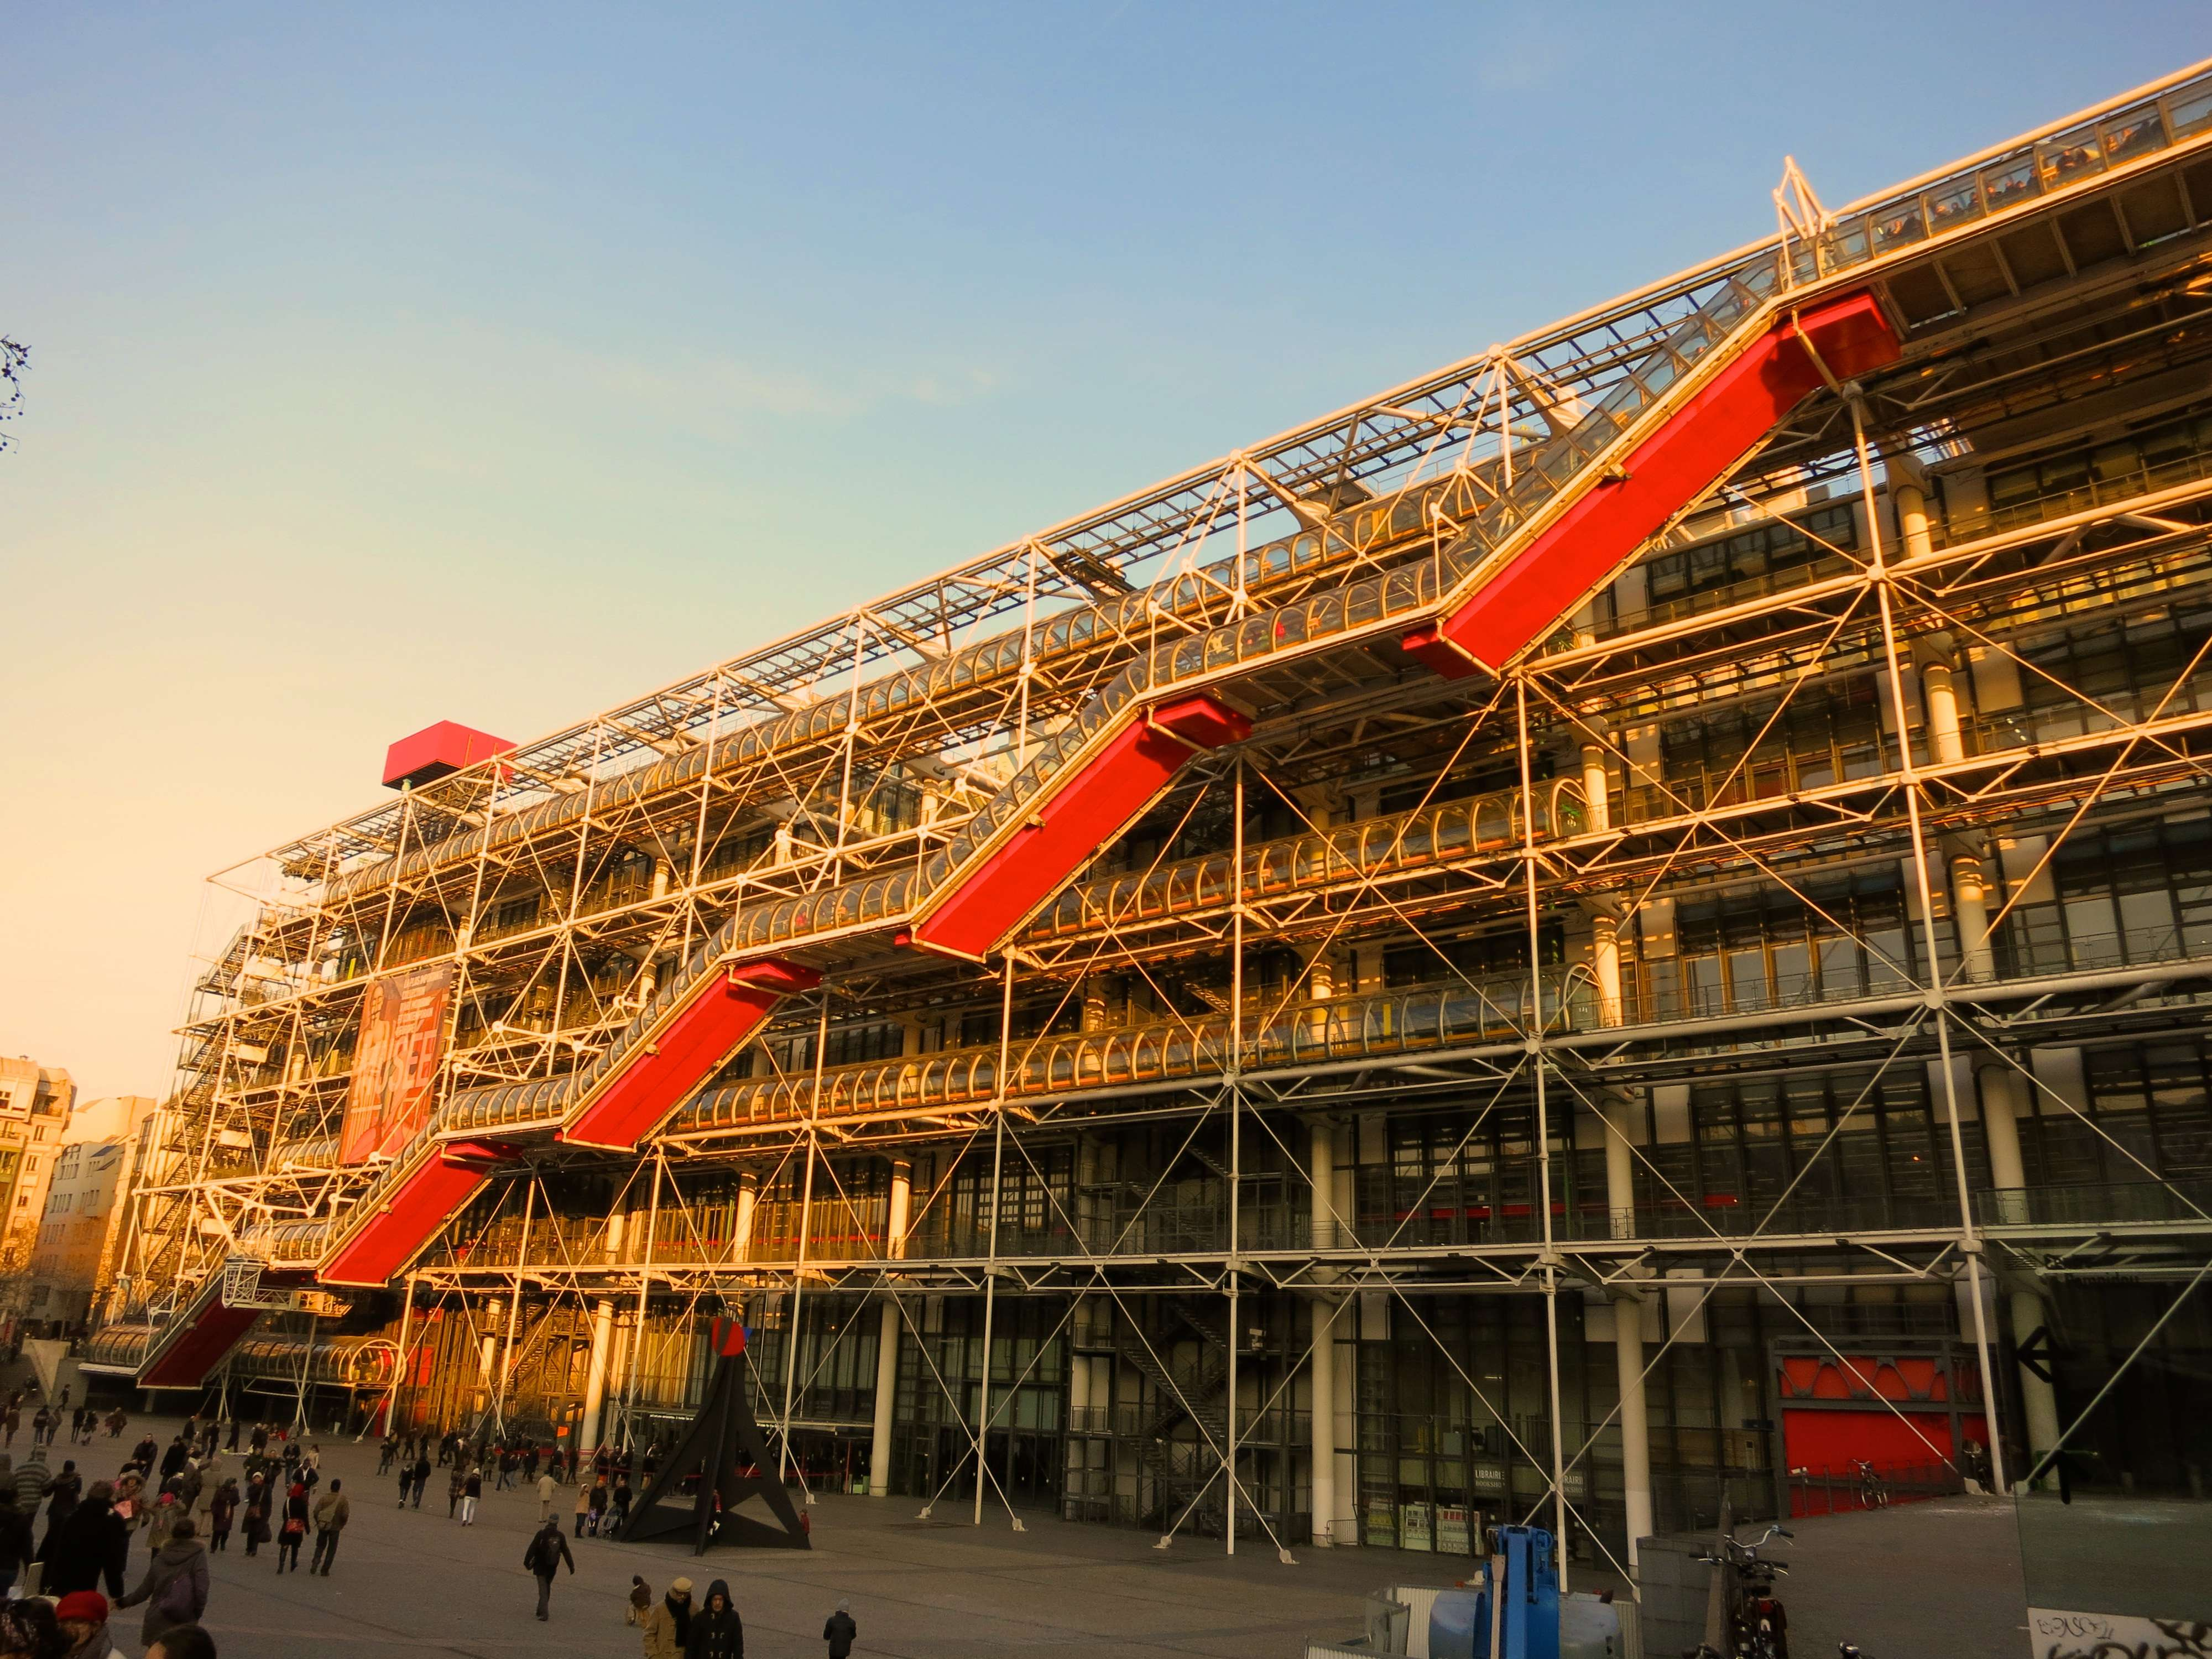 Beaubourg and Châtelet - Les Halles